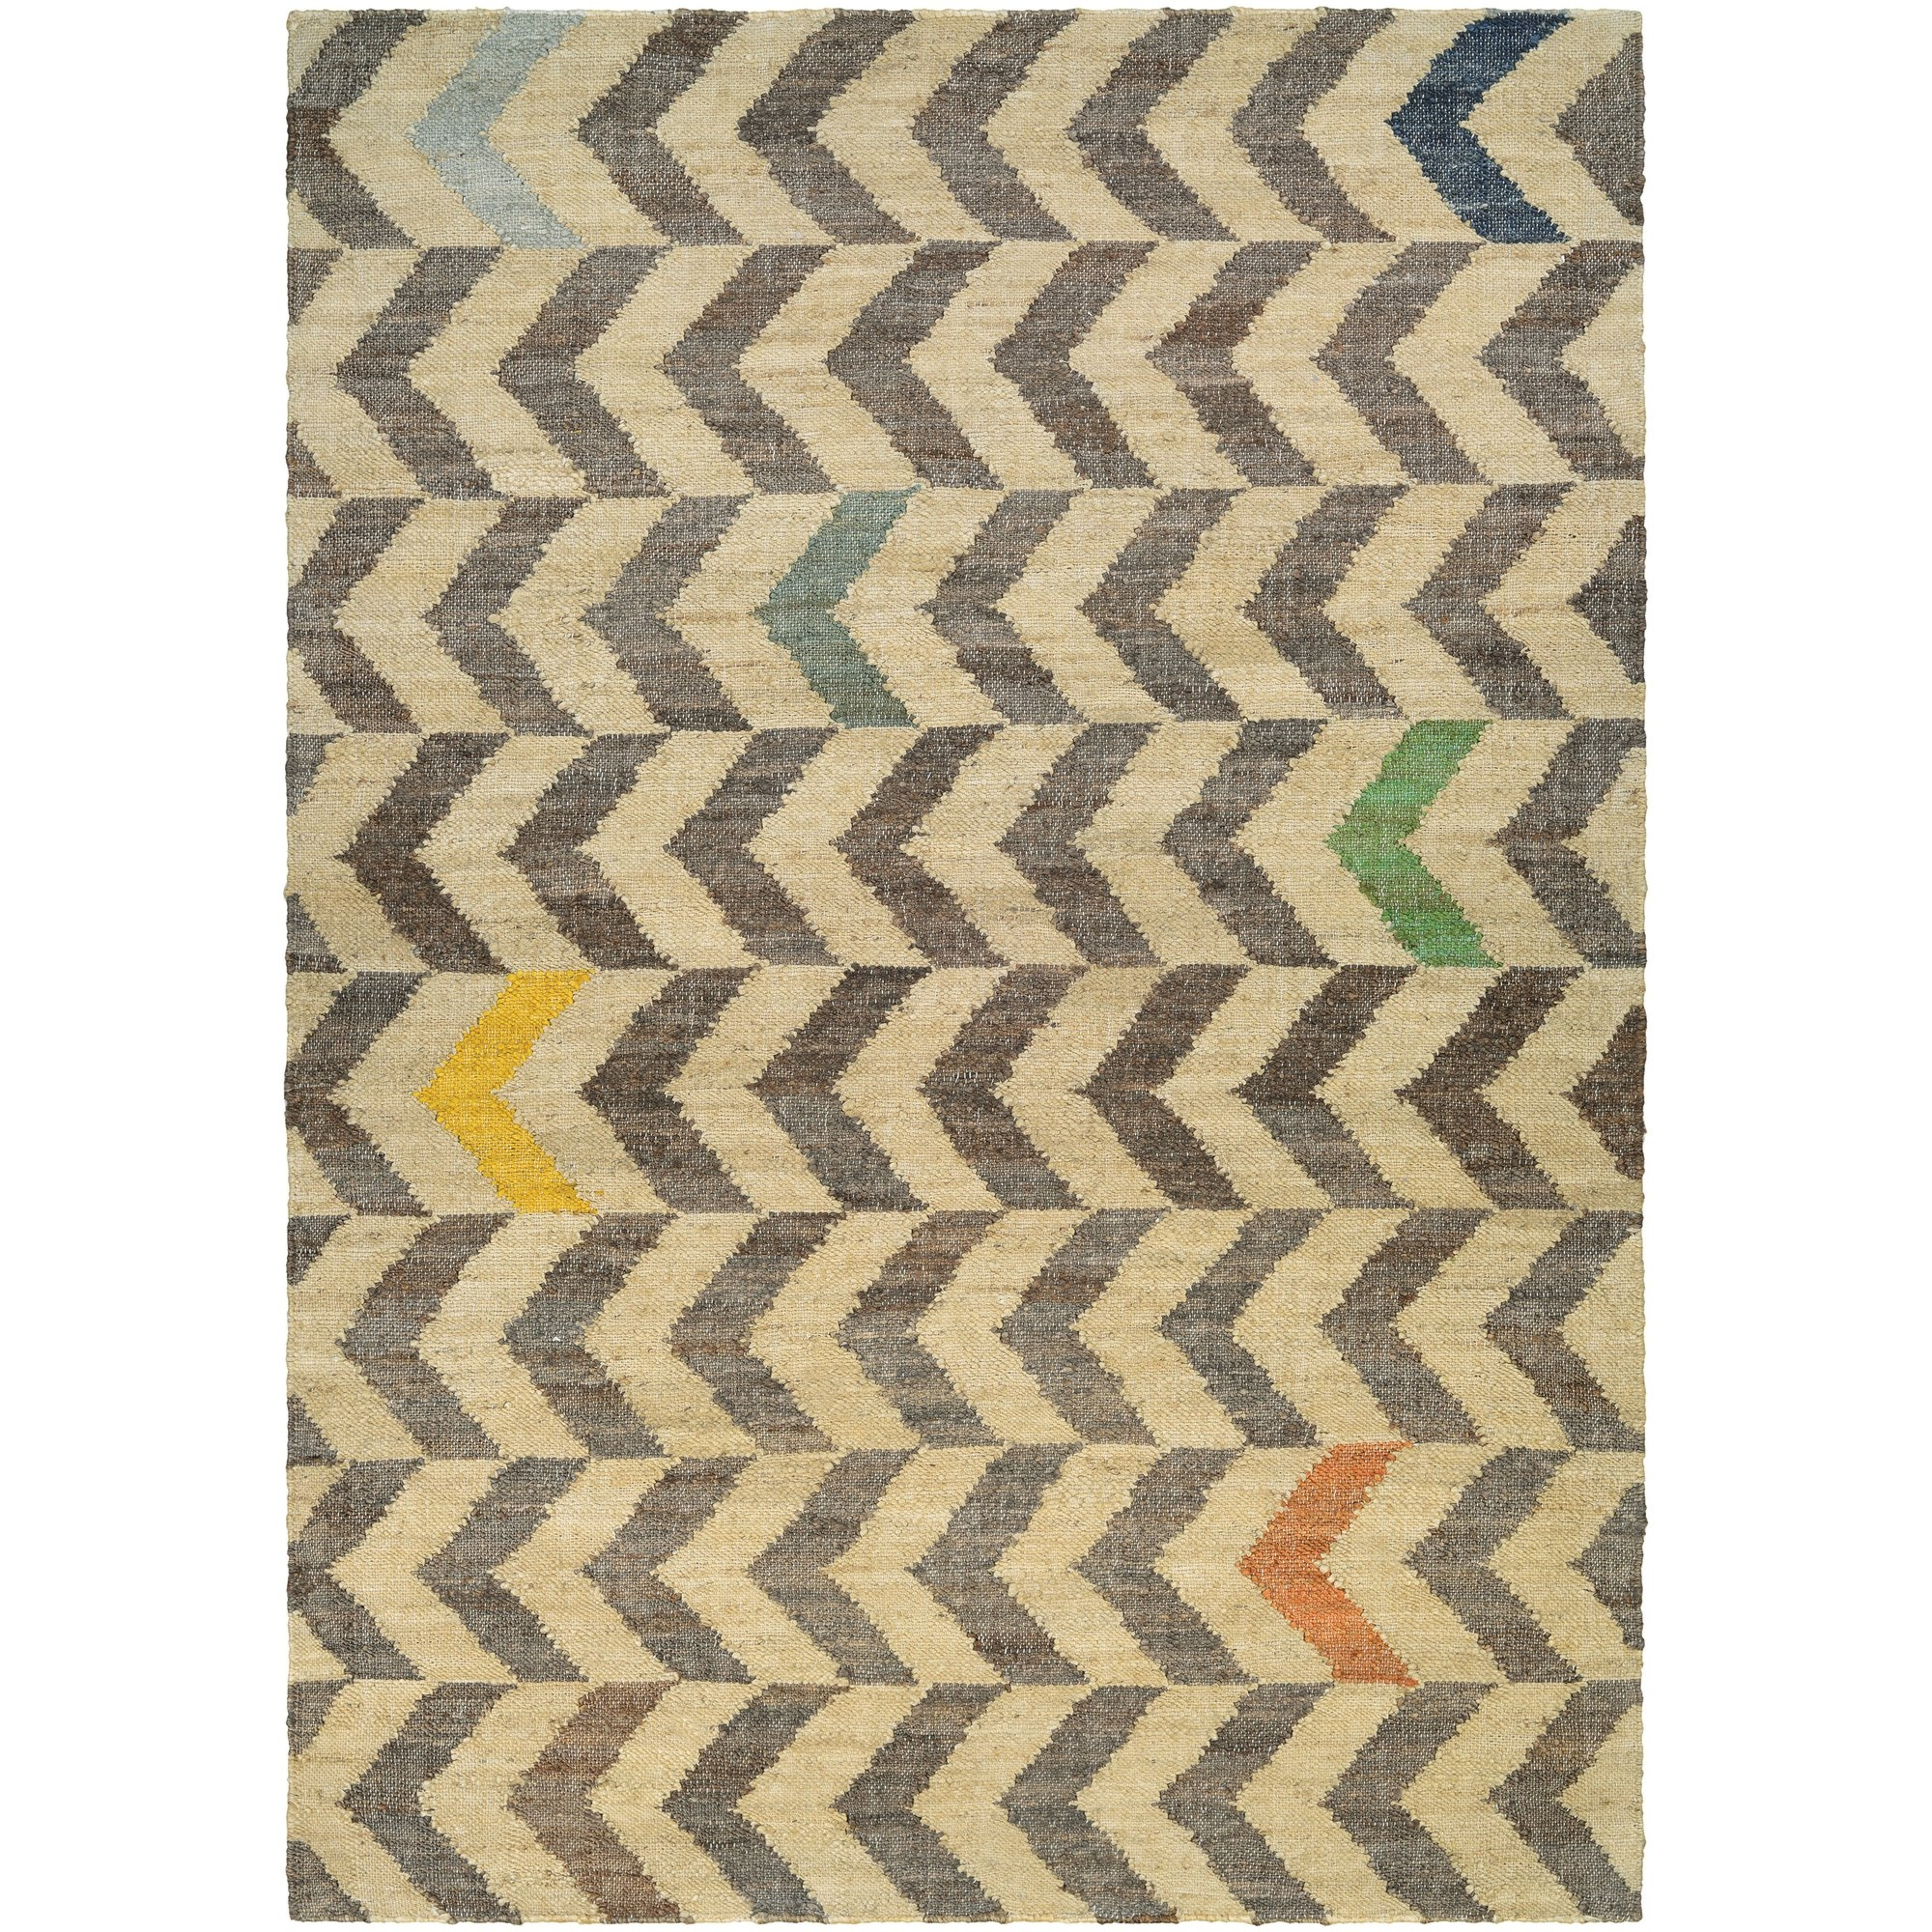 15 ideas of non wool area rugs for Modern wool area rugs